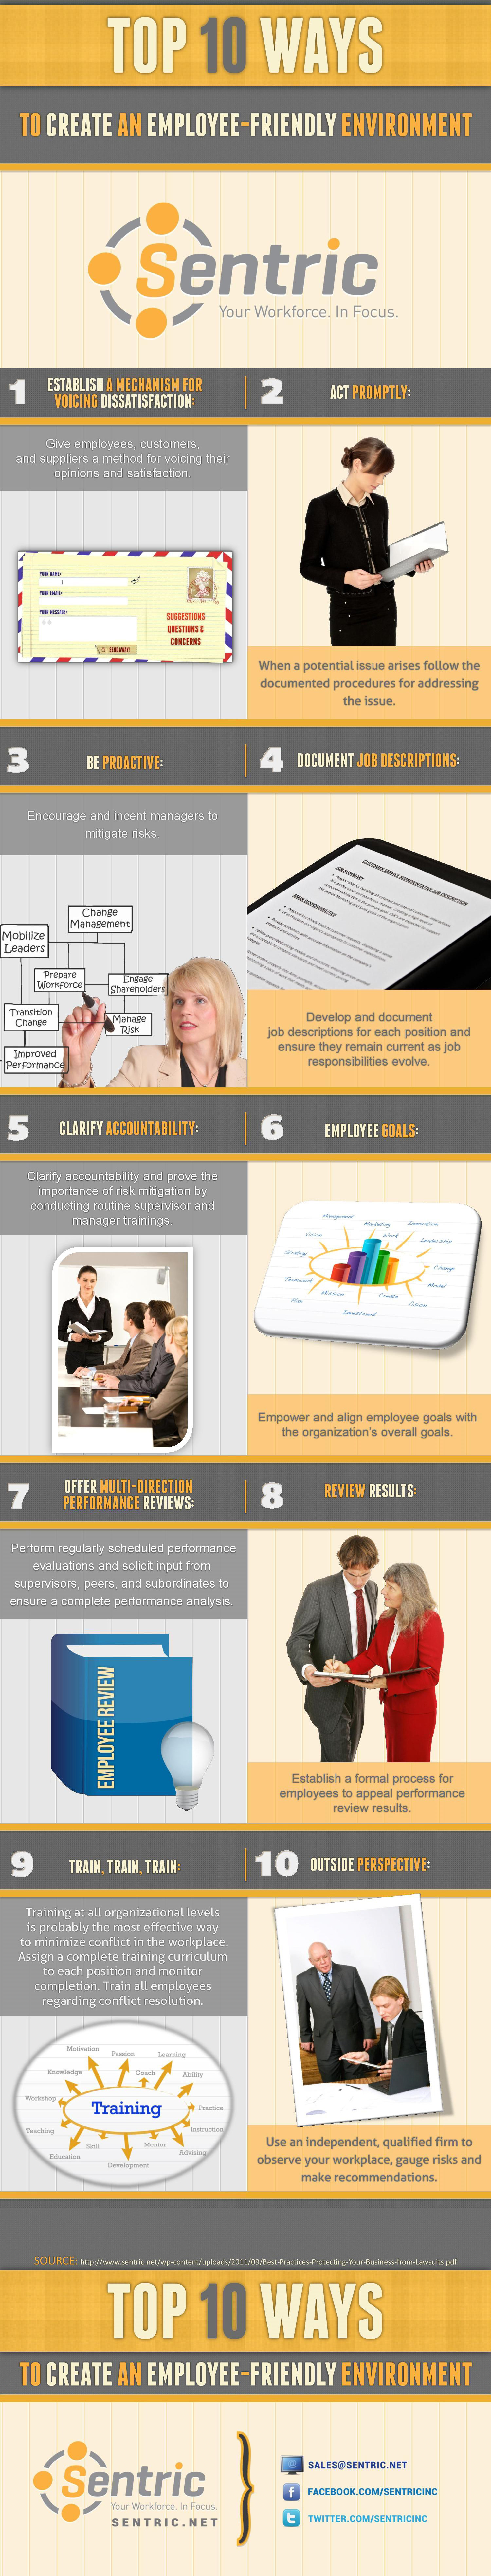 10 Ways to Create an Employee-Friendly Environment Infographic